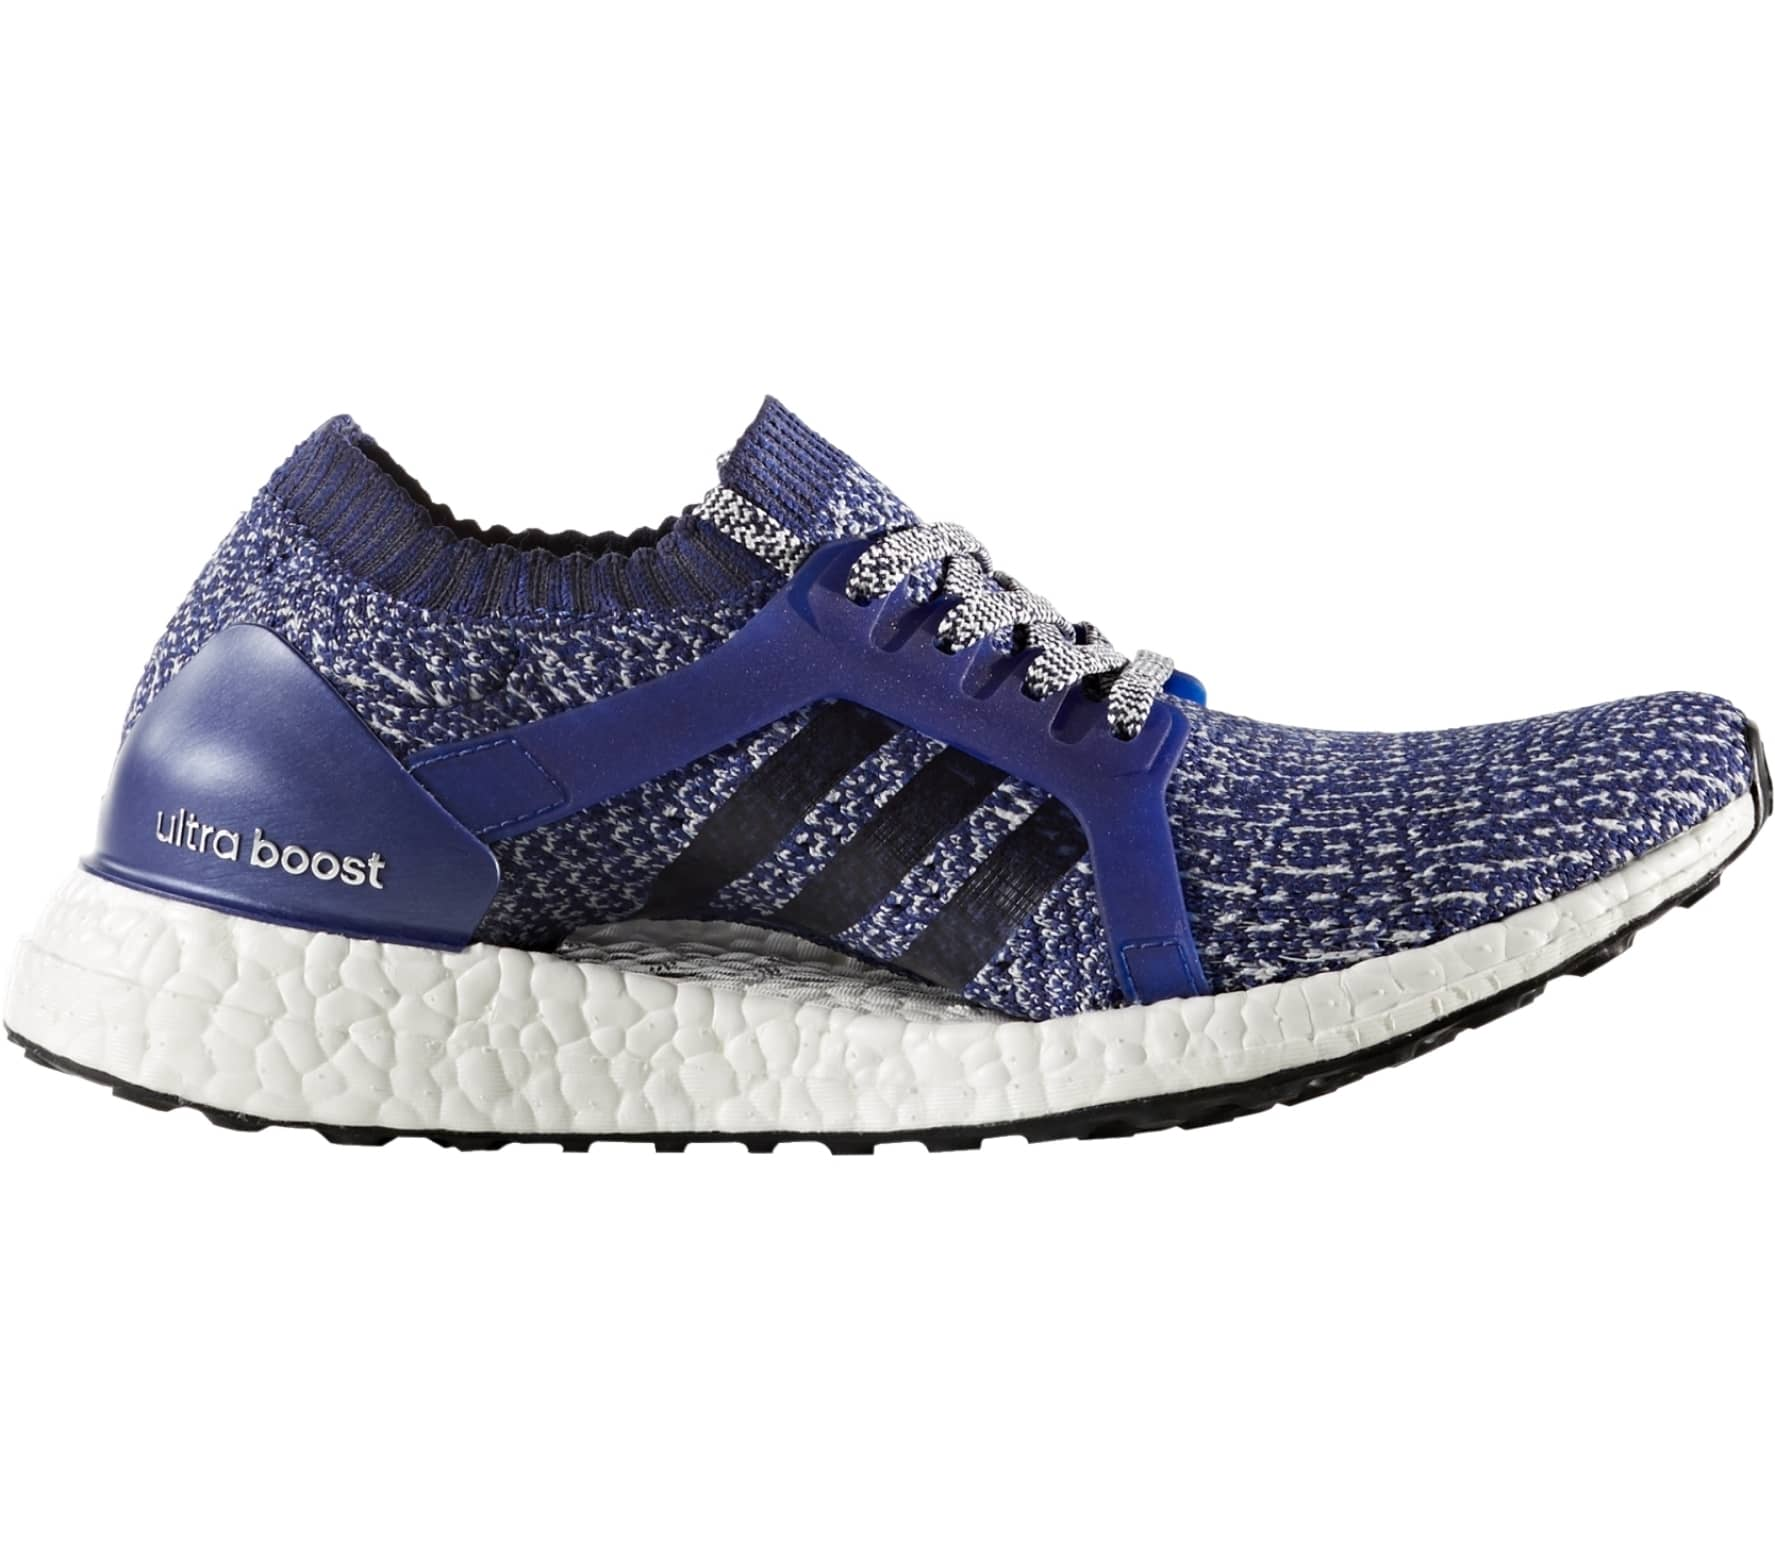 84e8c0f800c Adidas - Ultra Boost X women s running shoes (grey dark blue) - buy ...